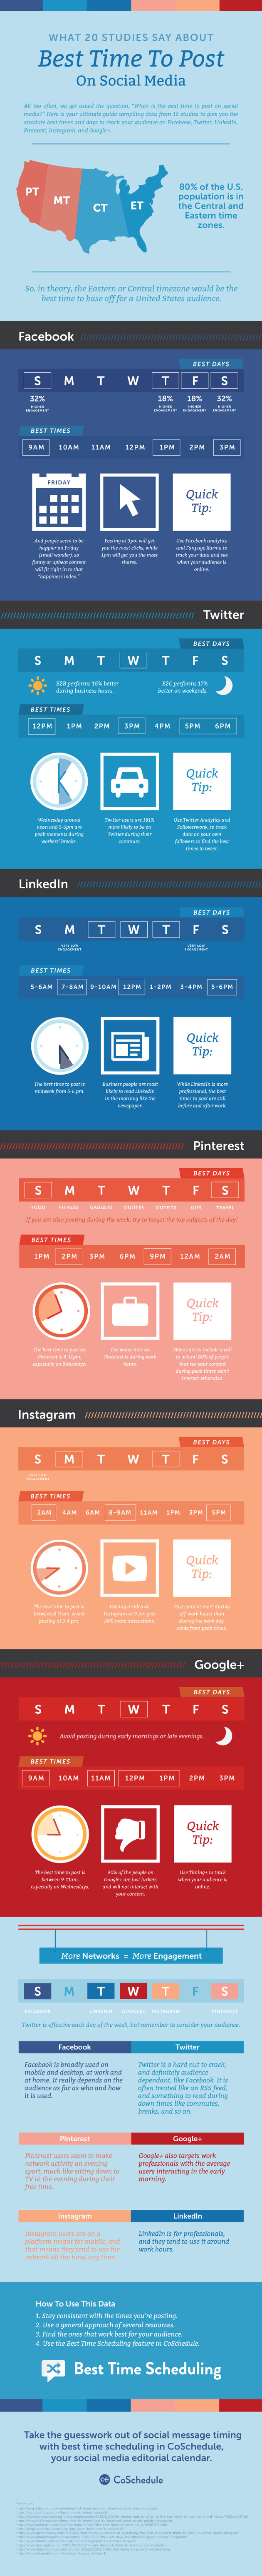 170814-infographic-best-times-to-post-on-social-small